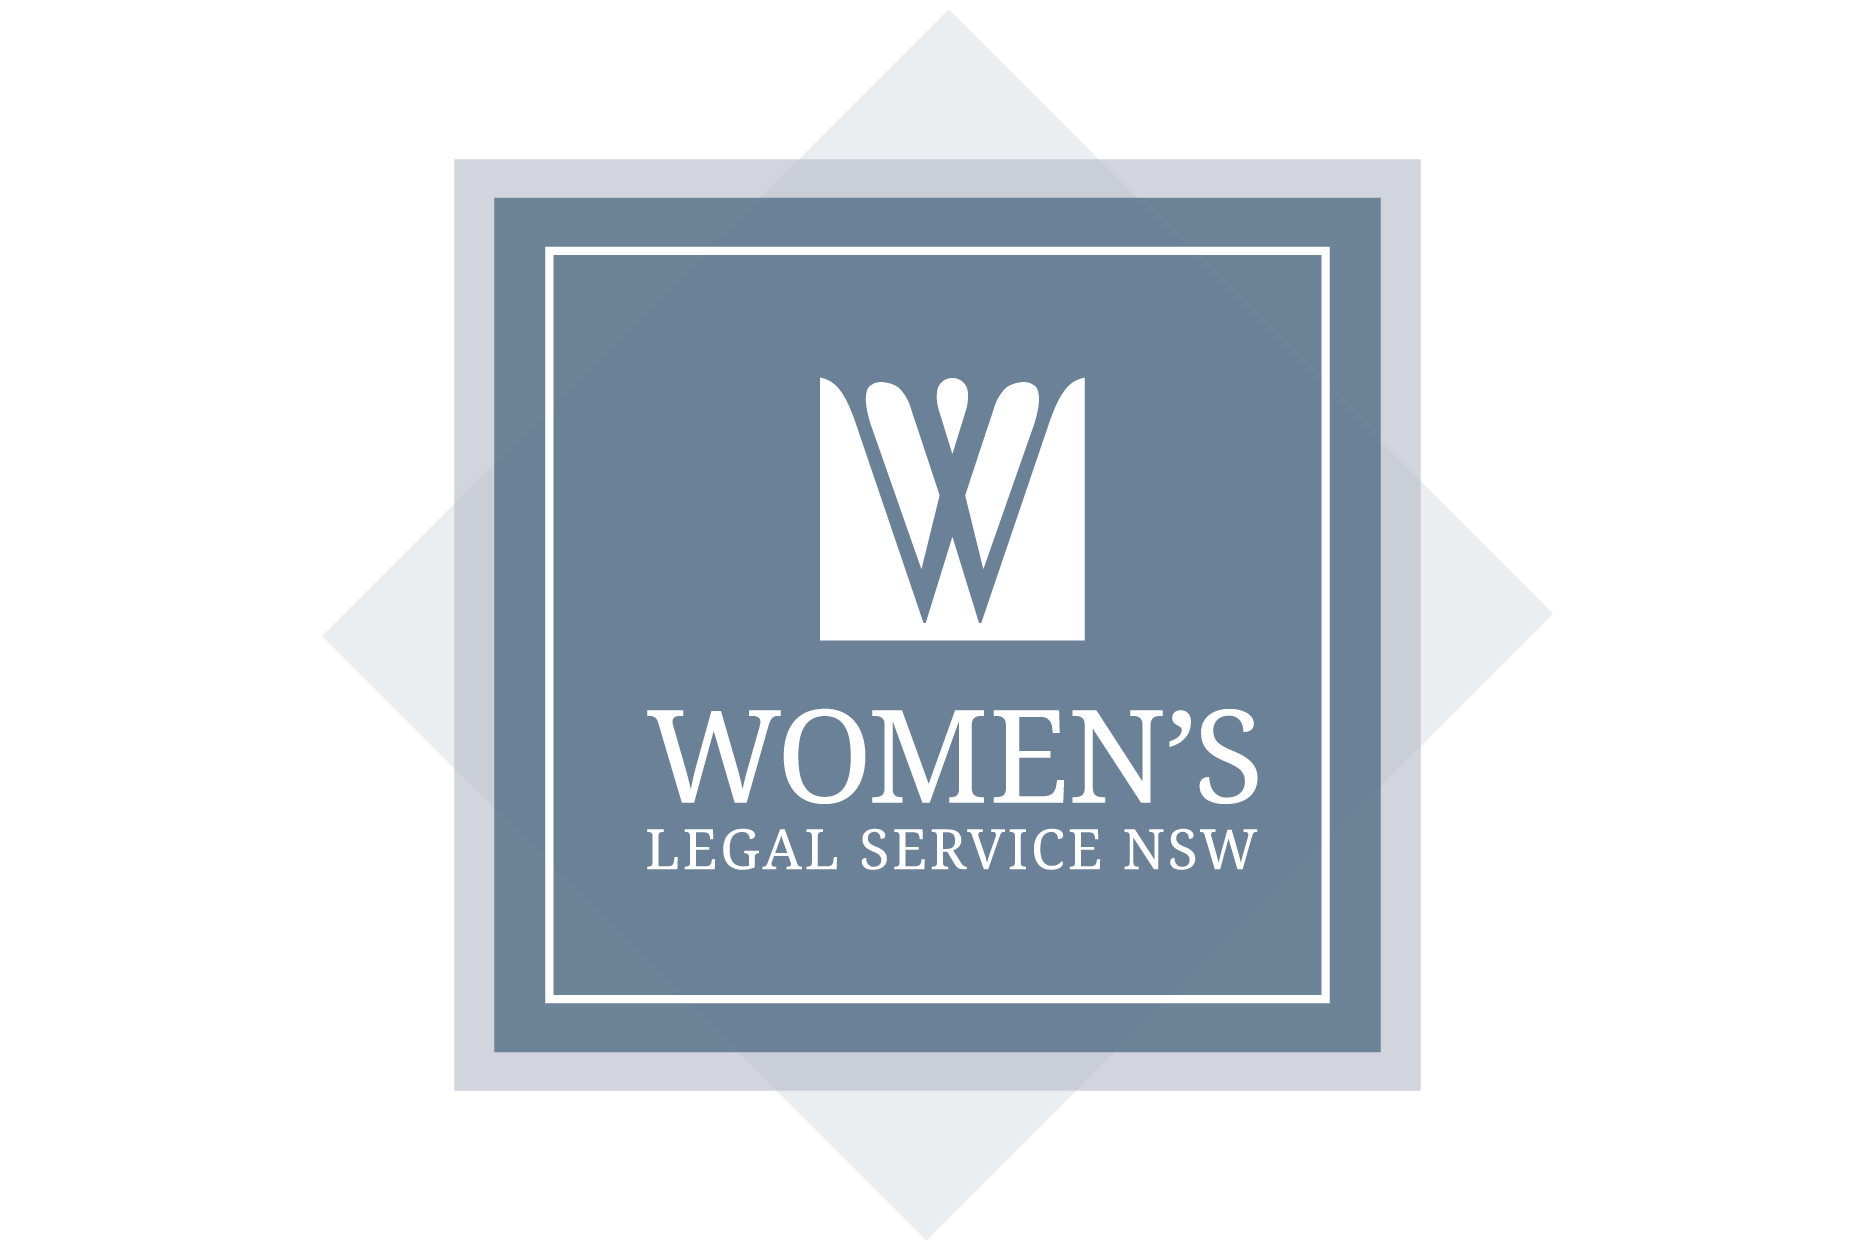 New name and logo for Women's Legal Service NSW